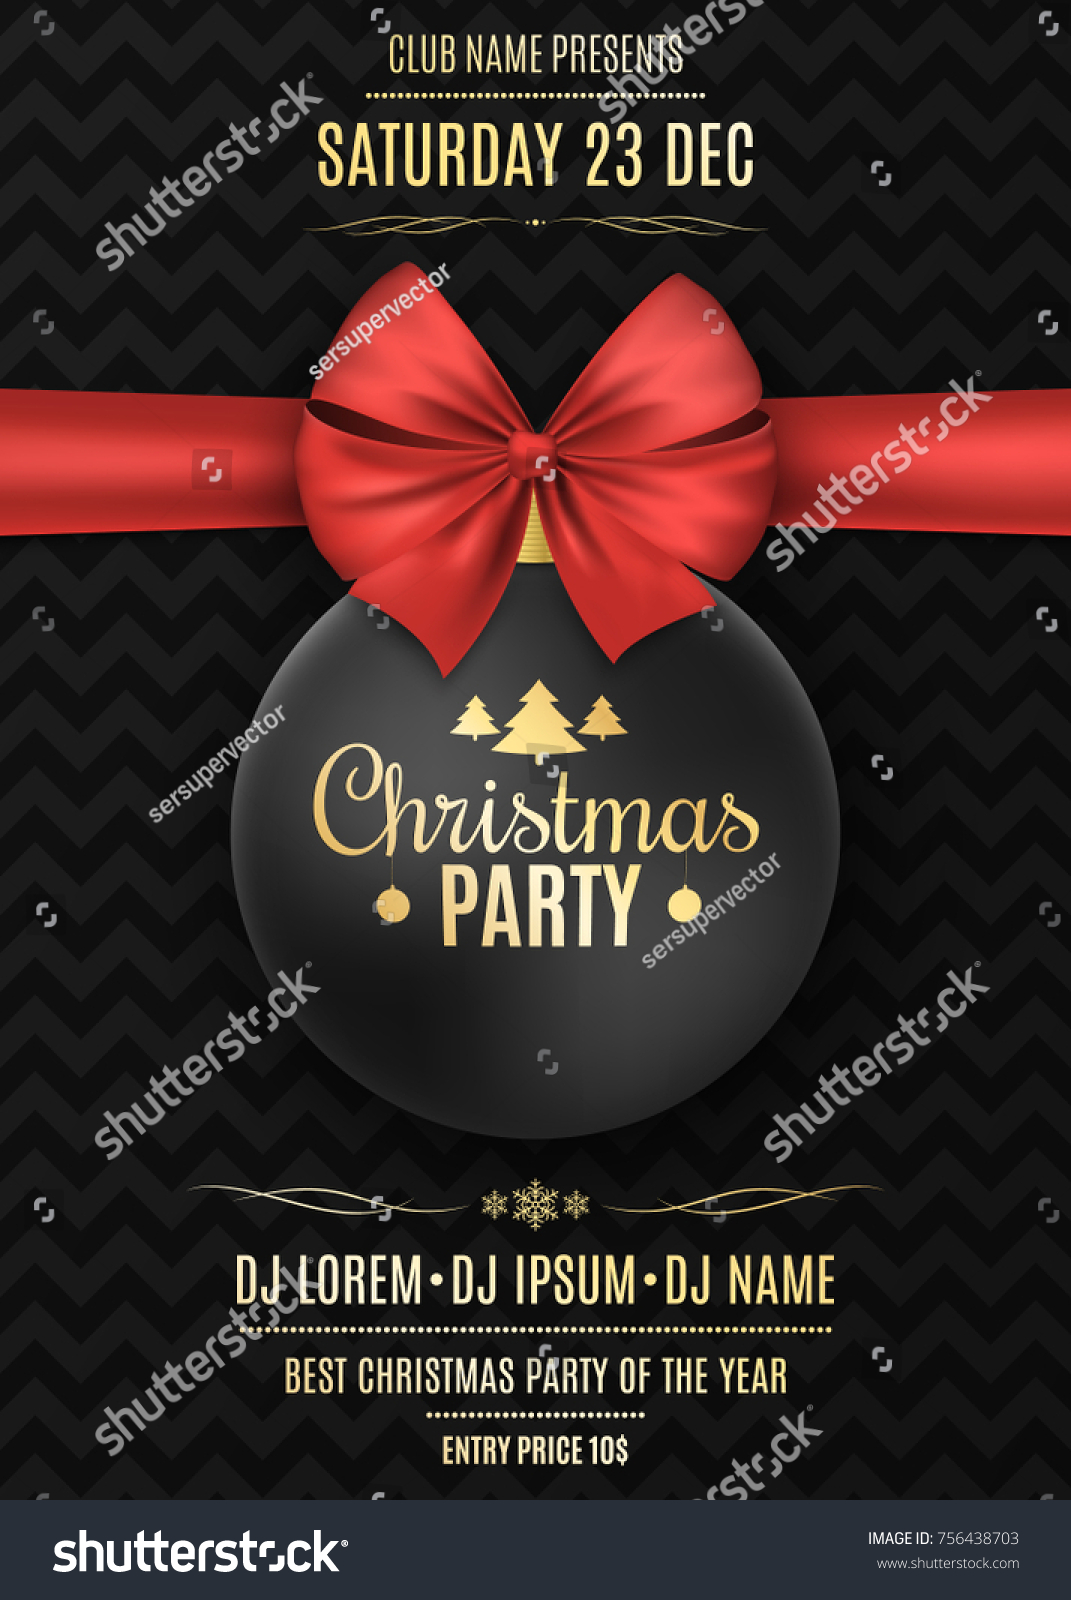 Invitation Christmas Party Black Ball Red Stock Vector (Royalty Free ...